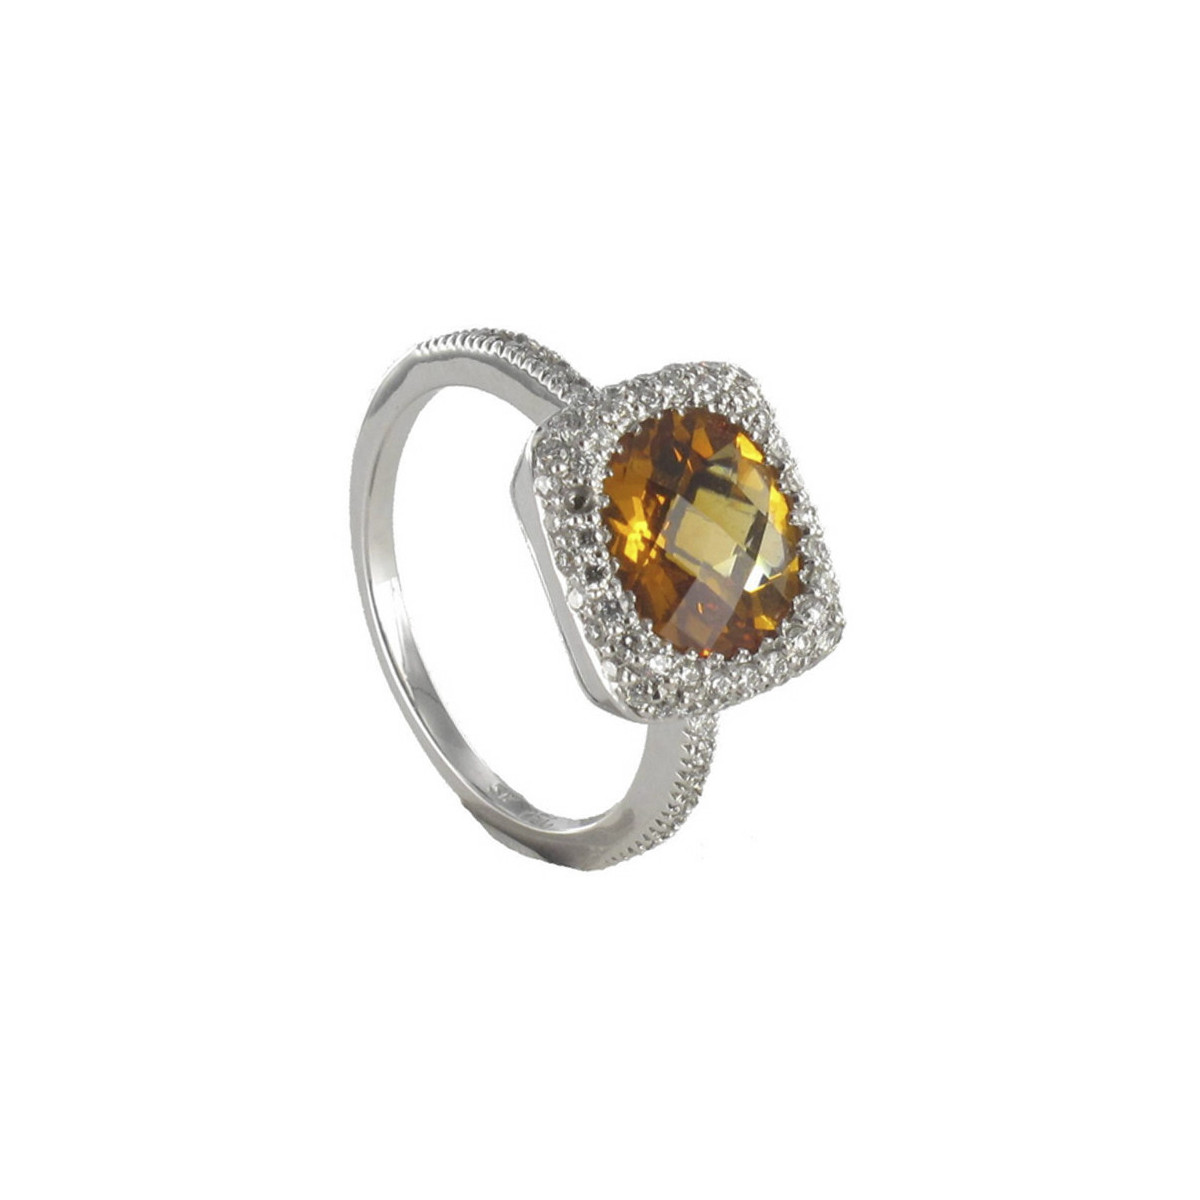 ANILLO ORO CITRINO Y 70 DIAMANTES